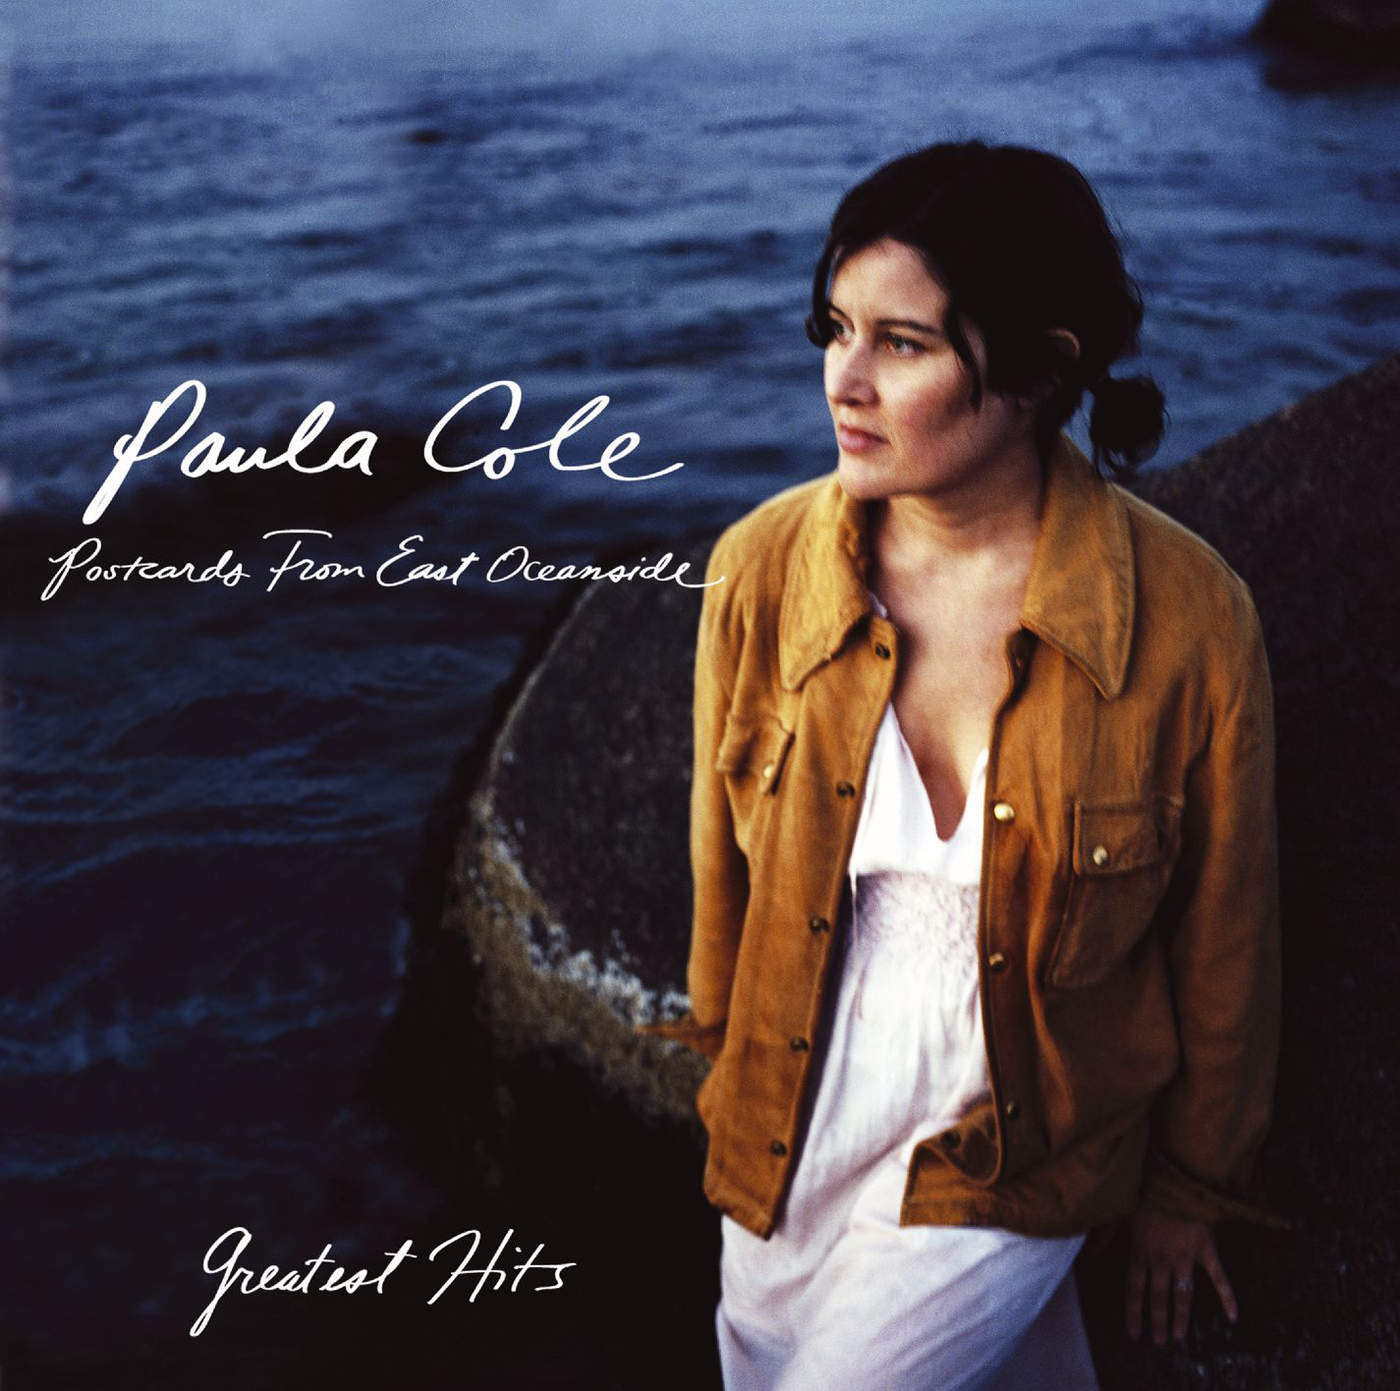 I Don't Want to Wait (Dawson's Creek theme) by Paula Cole